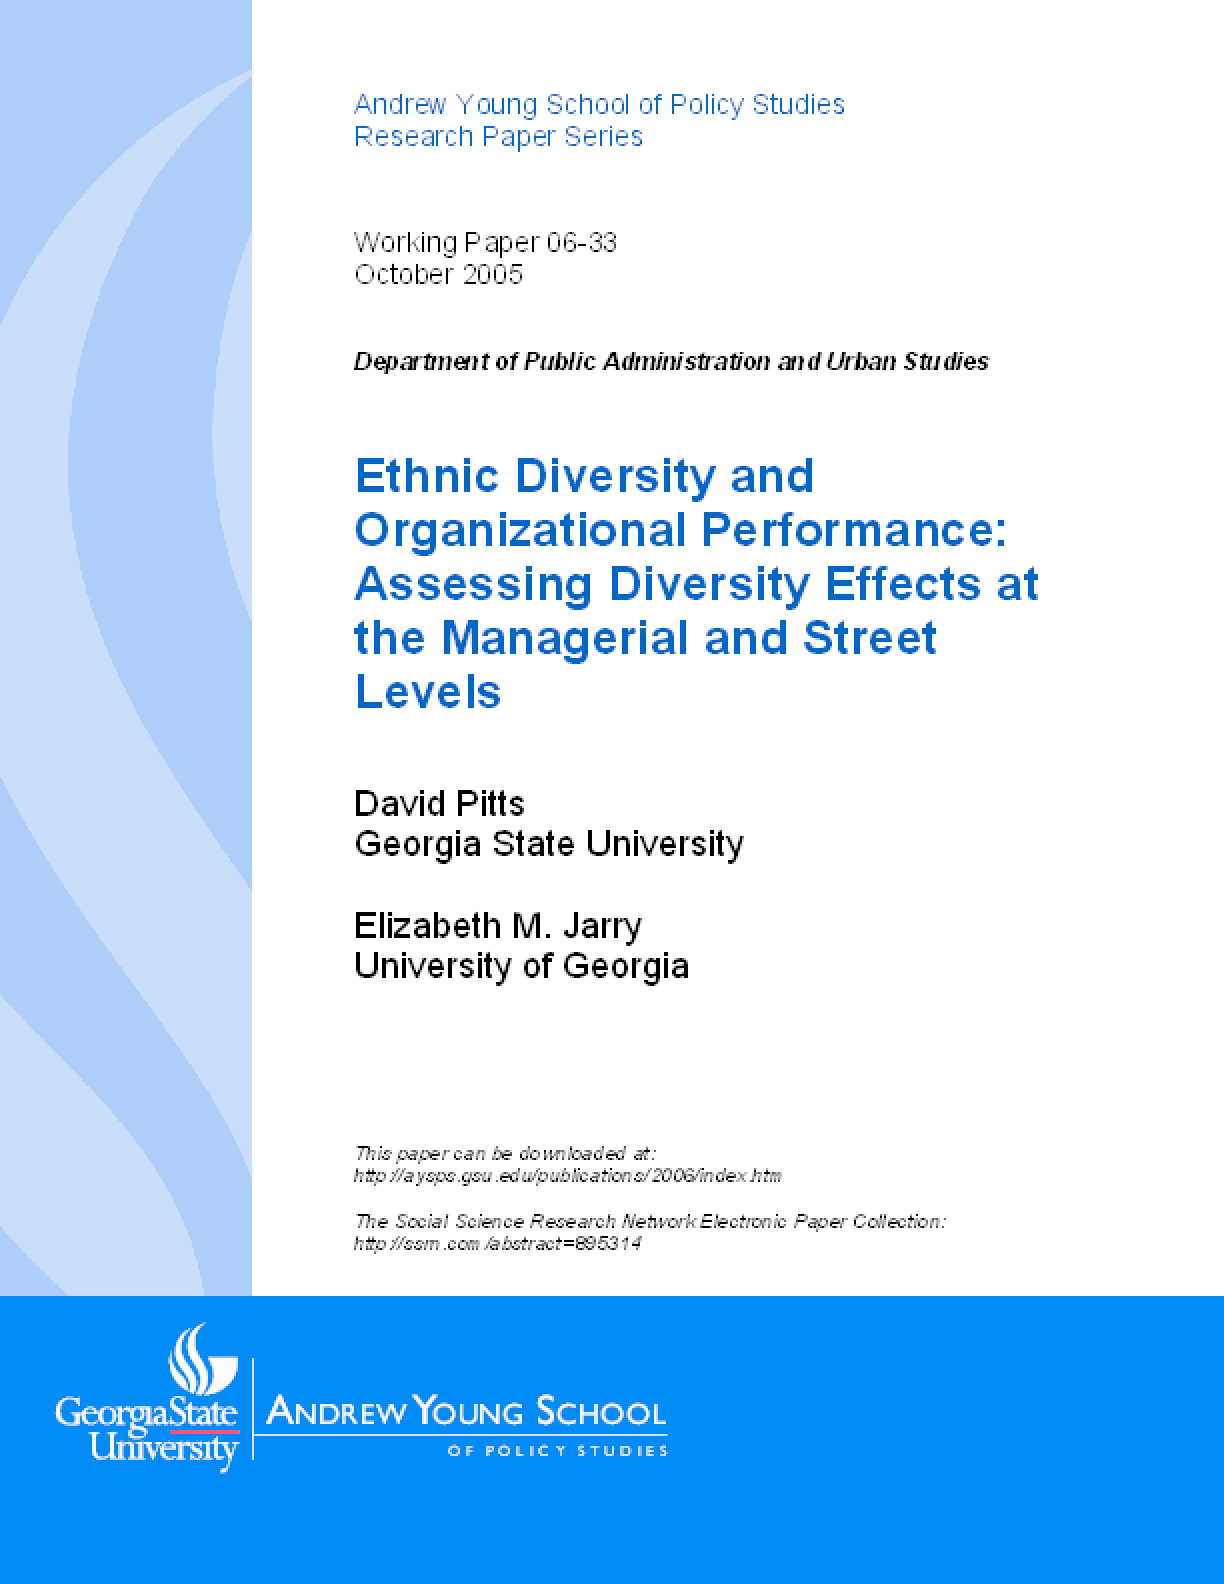 Ethnic Diversity and Organizational Performance: Assessing Diversity Effects at the Managerial and Street Levels